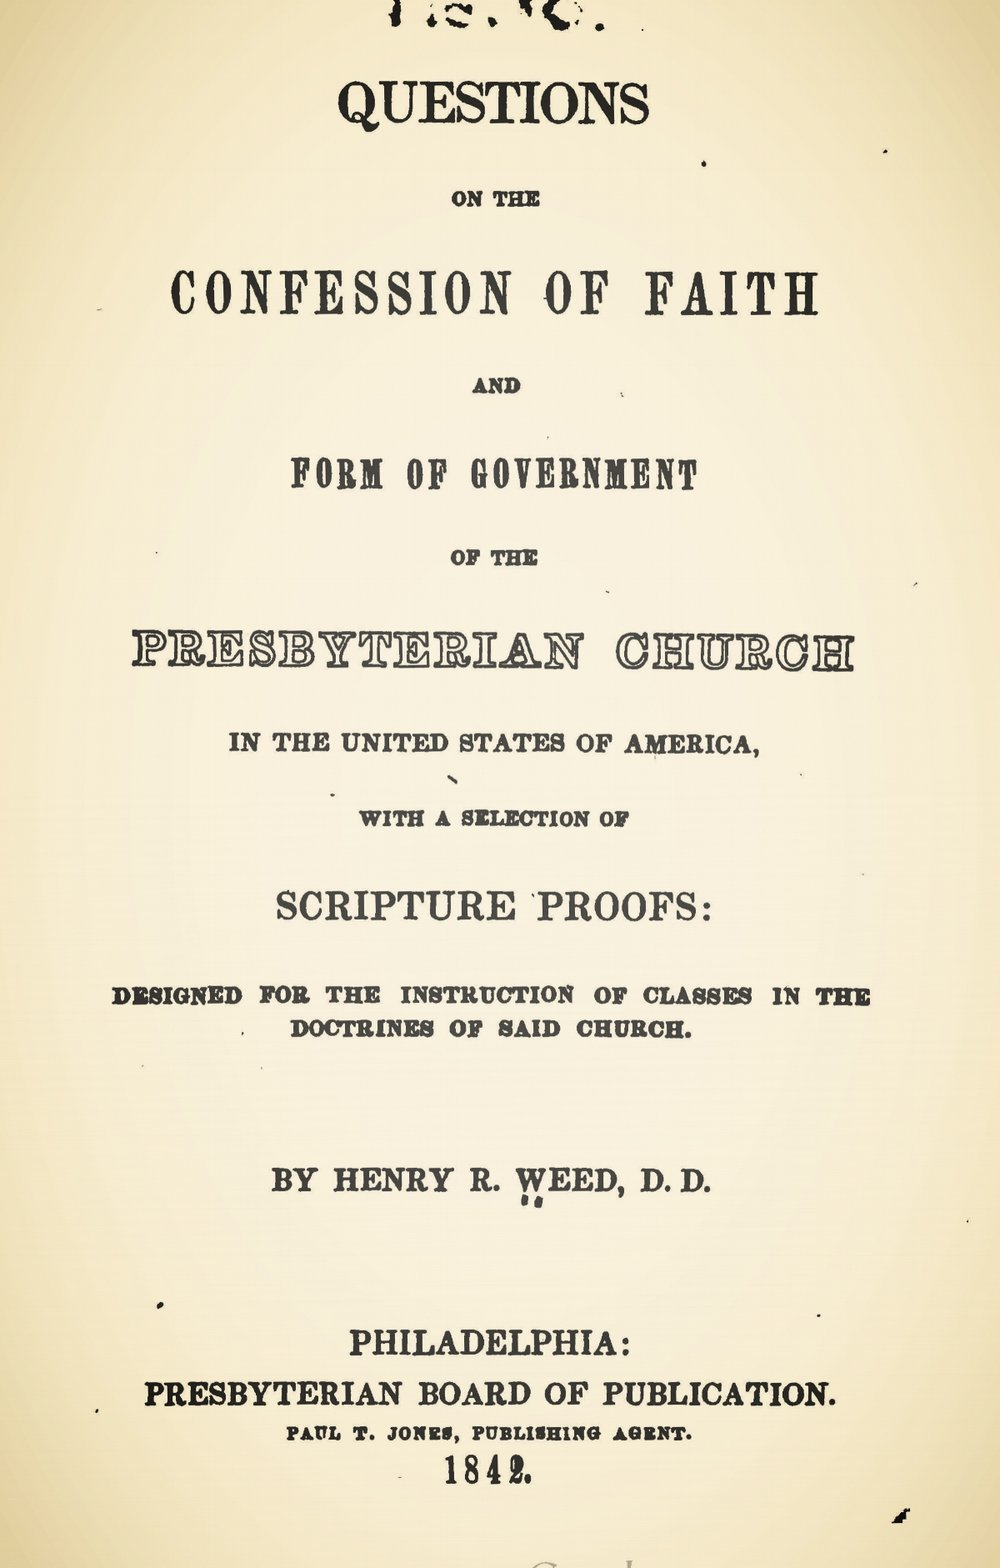 Weed, Henry Rowland, Questions on the Confession of Faith and Form of Government Title Page.jpg